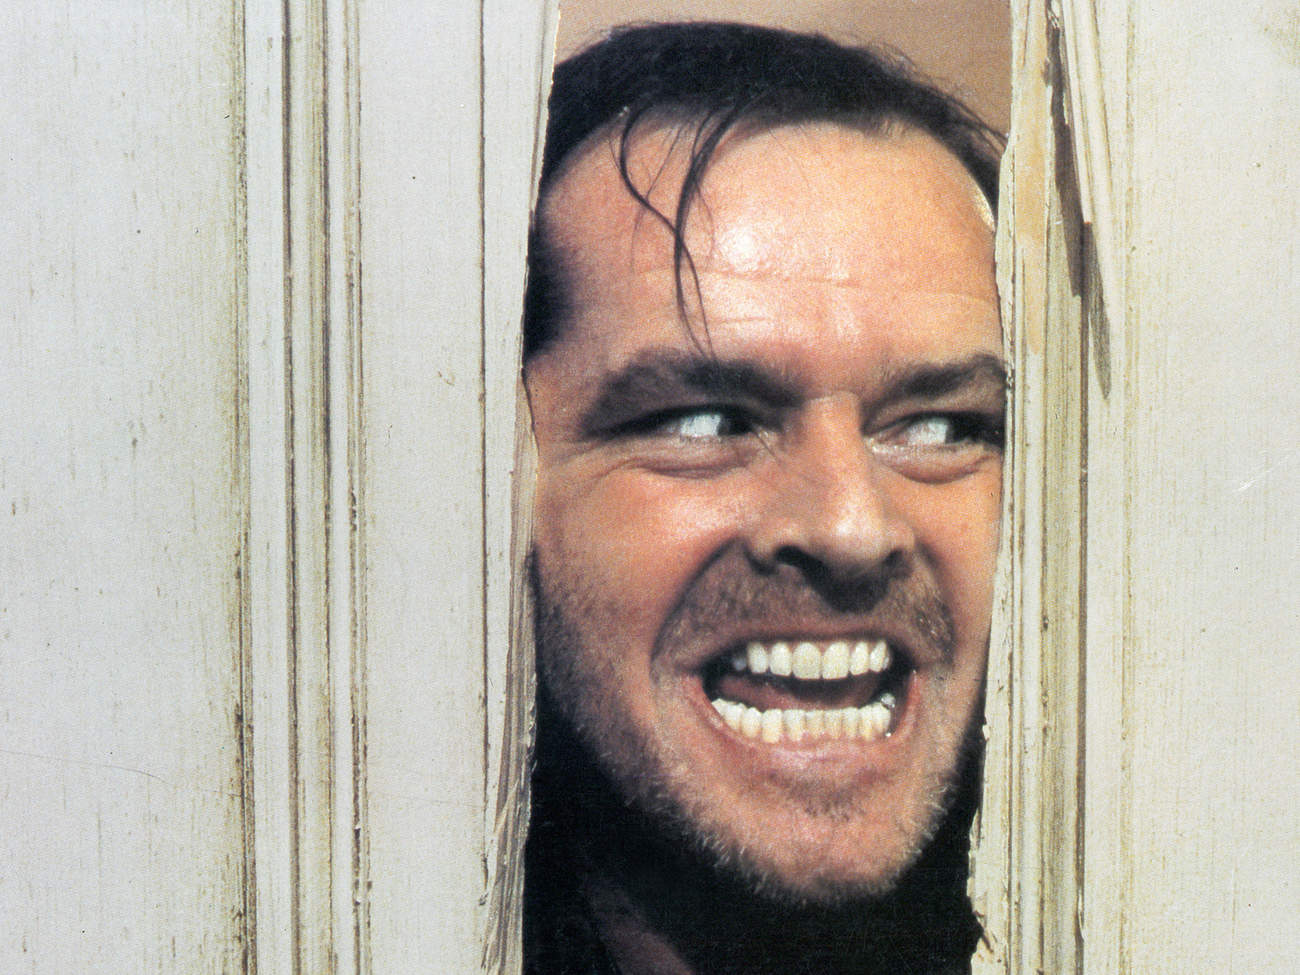 Jack Nicholson In The Shining Halloween Movies